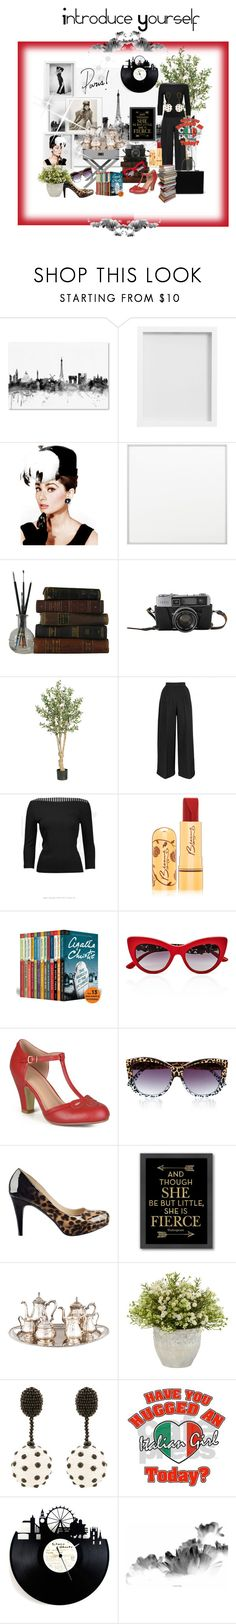 """""""Introduce Yourself"""" by theitalianparisian ❤ liked on Polyvore featuring Pottery Barn, By Lassen, Bésame, Dolce&Gabbana, Journee Collection, Le Specs, Marc Fisher, Americanflat and Oscar de la Renta"""